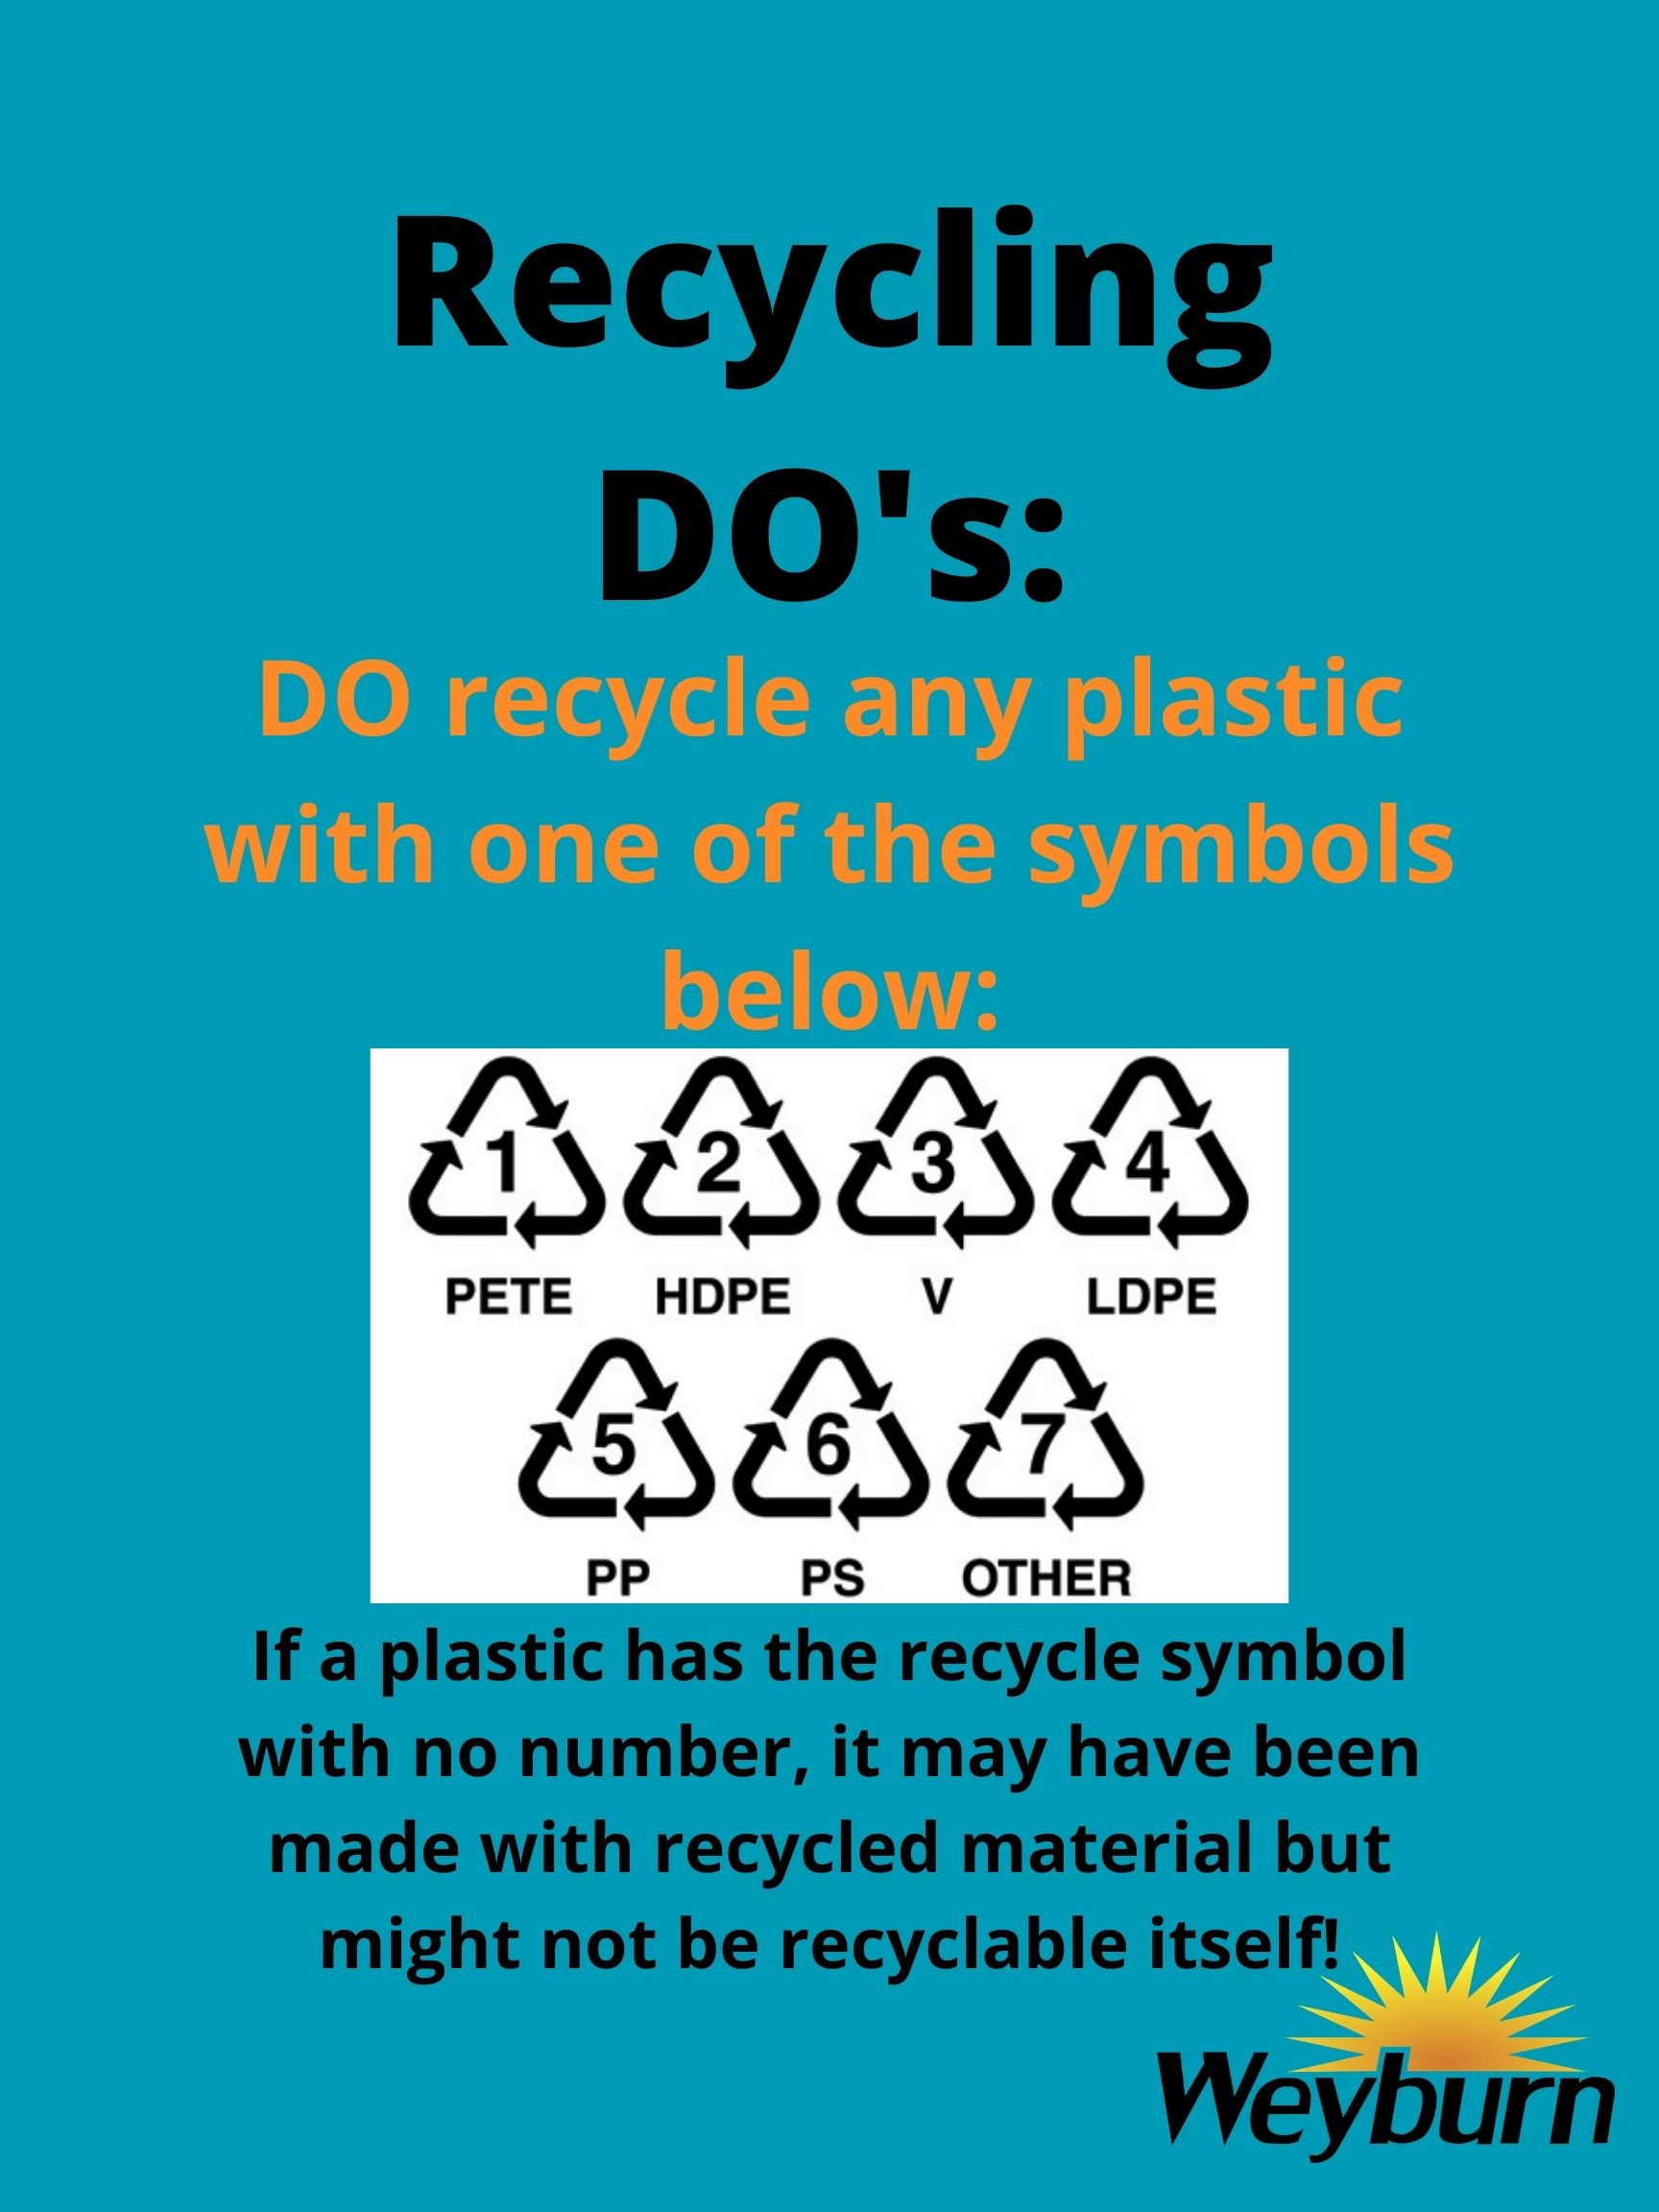 Recycling-DOs_Numbers